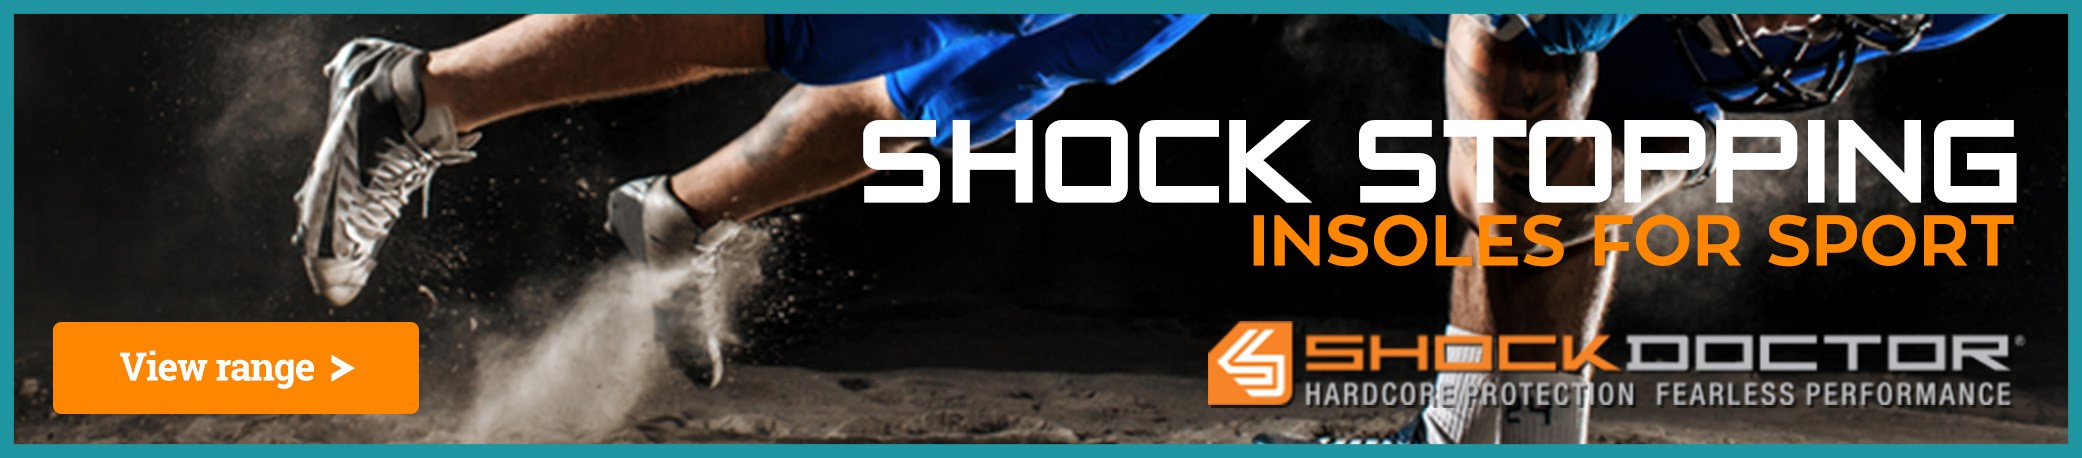 Visit our Shock Doctor Category to See Our Full Range of Shock Doctor Insoles